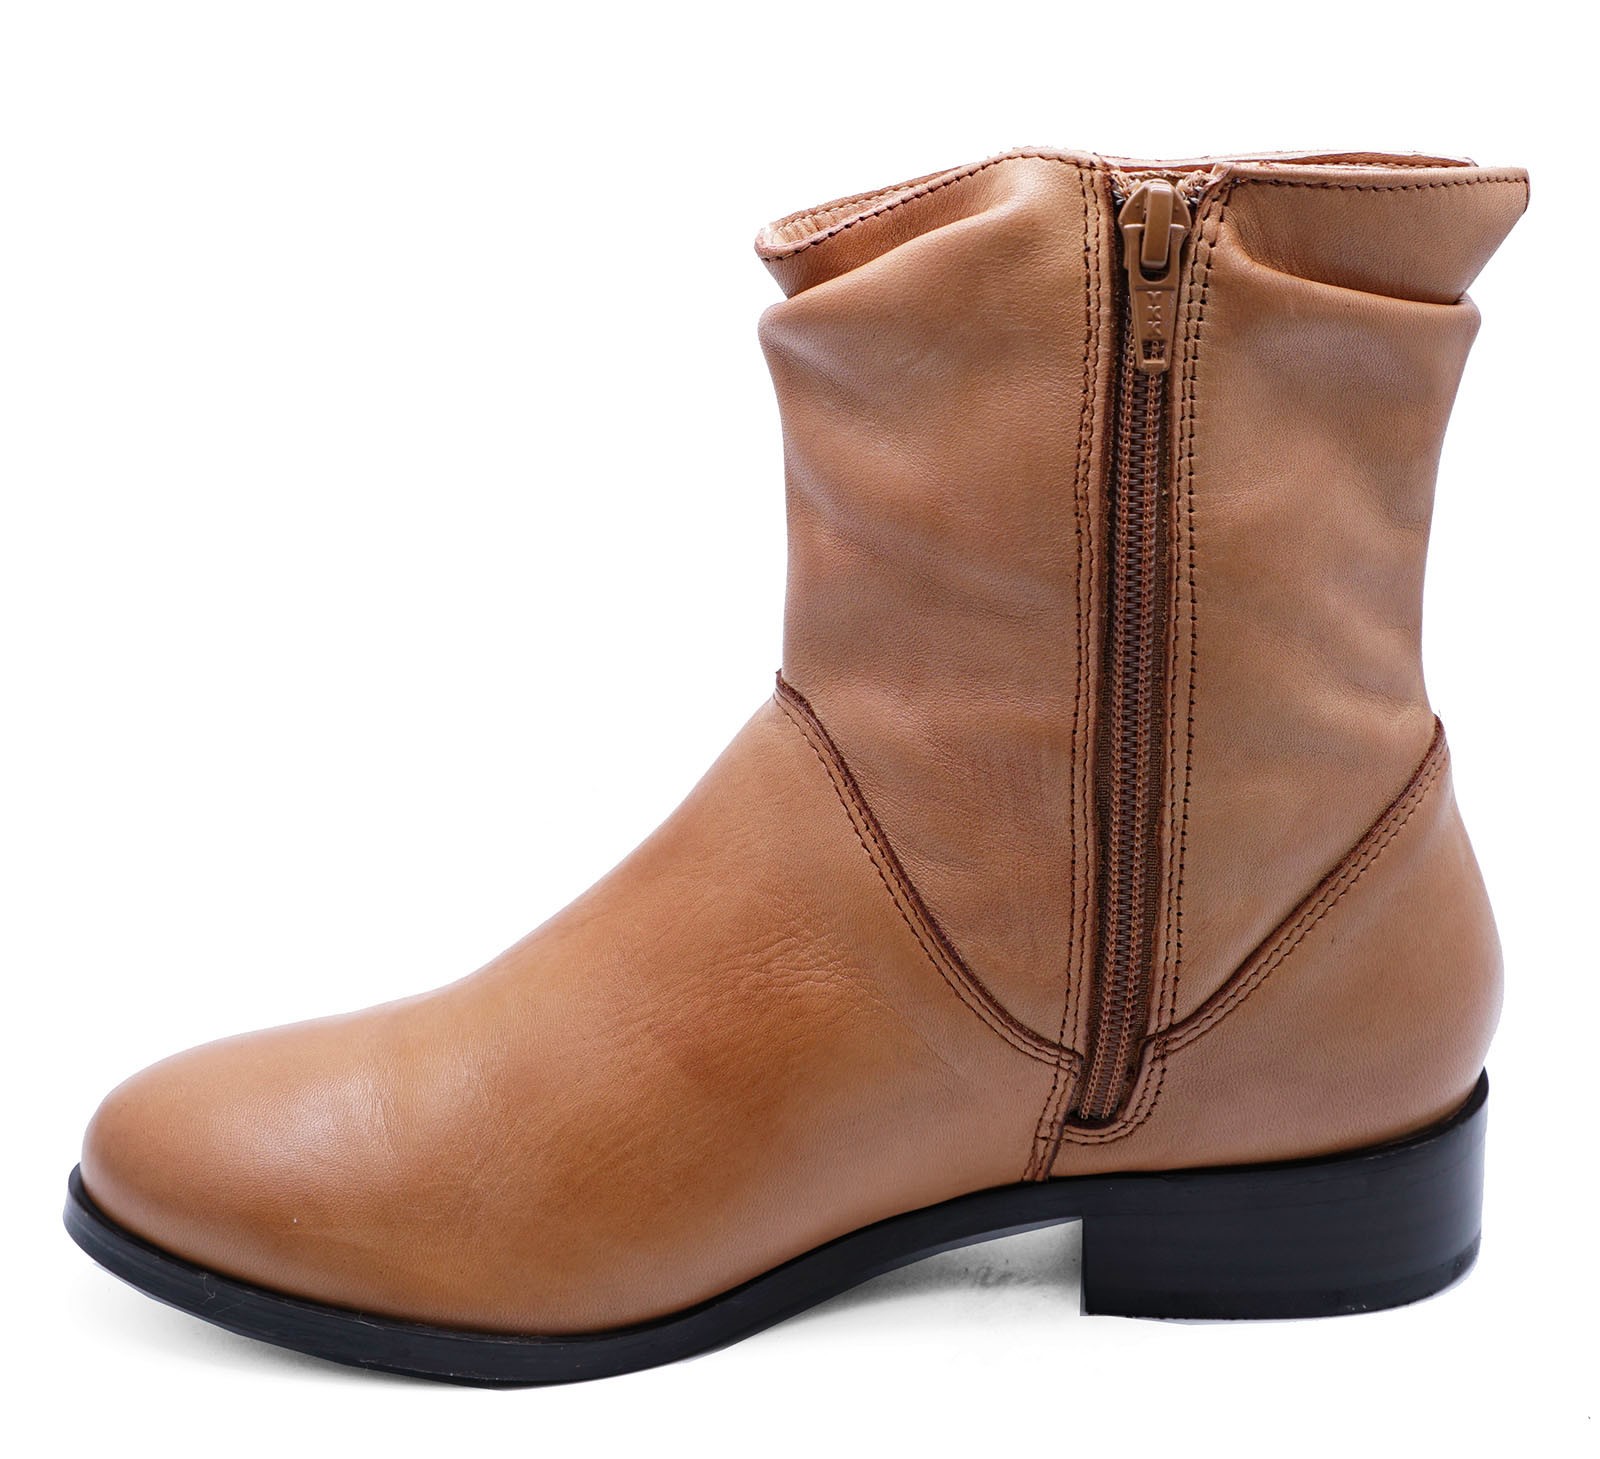 LADIES-FLAT-GENUINE-LEATHER-TAN-ZIP-UP-ANKLE-CALF-BOOTS-COMFY-SHOES-SIZES-2-9 thumbnail 38